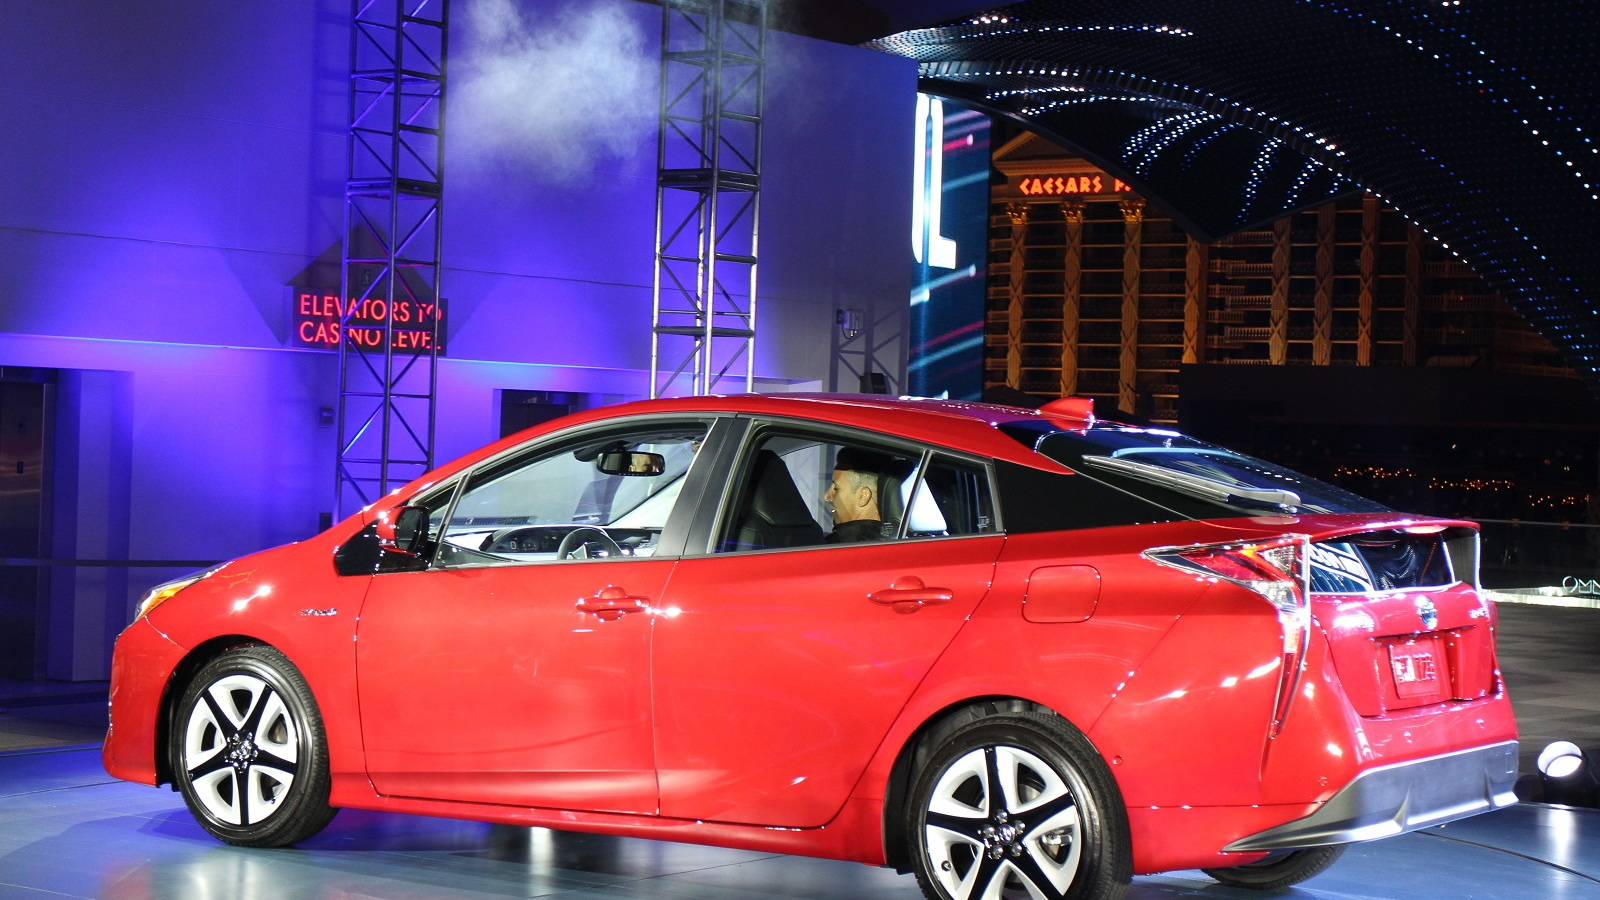 2016 Toyota Prius, global launch, Las Vegas, Sept 2016